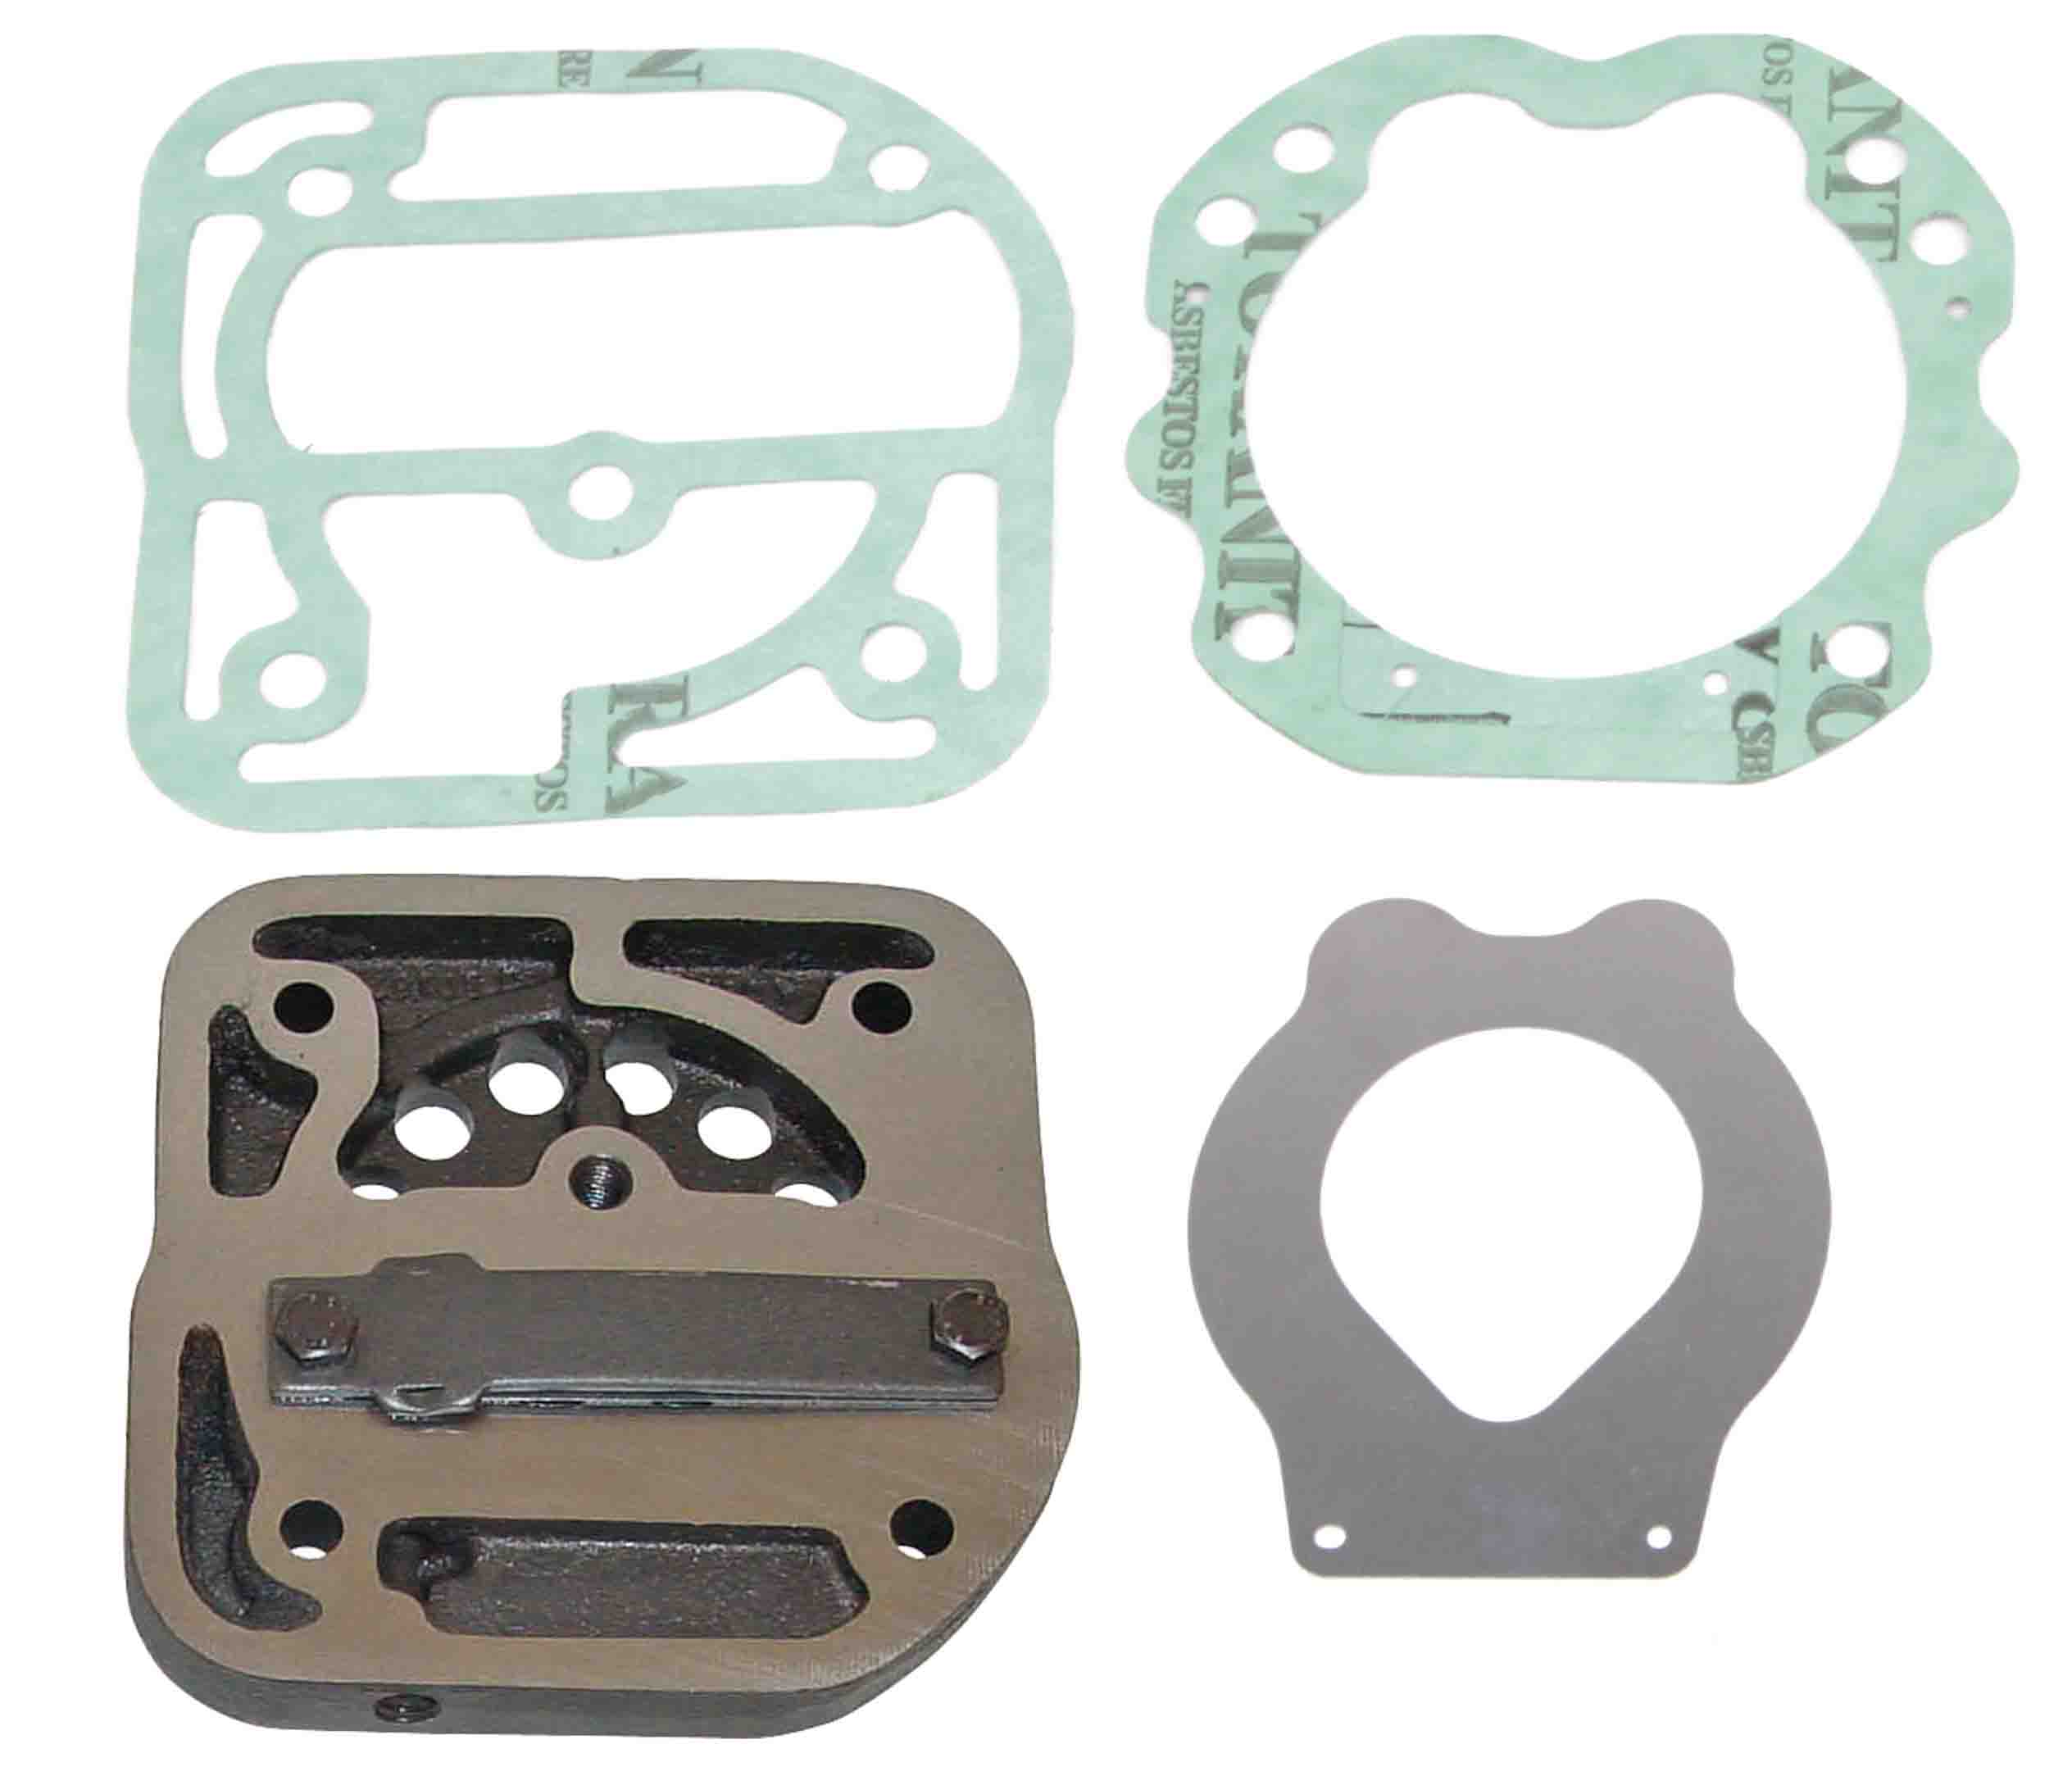 MERCEDES VALVE PLATE KIT ARC-EXP.304679 1880570061